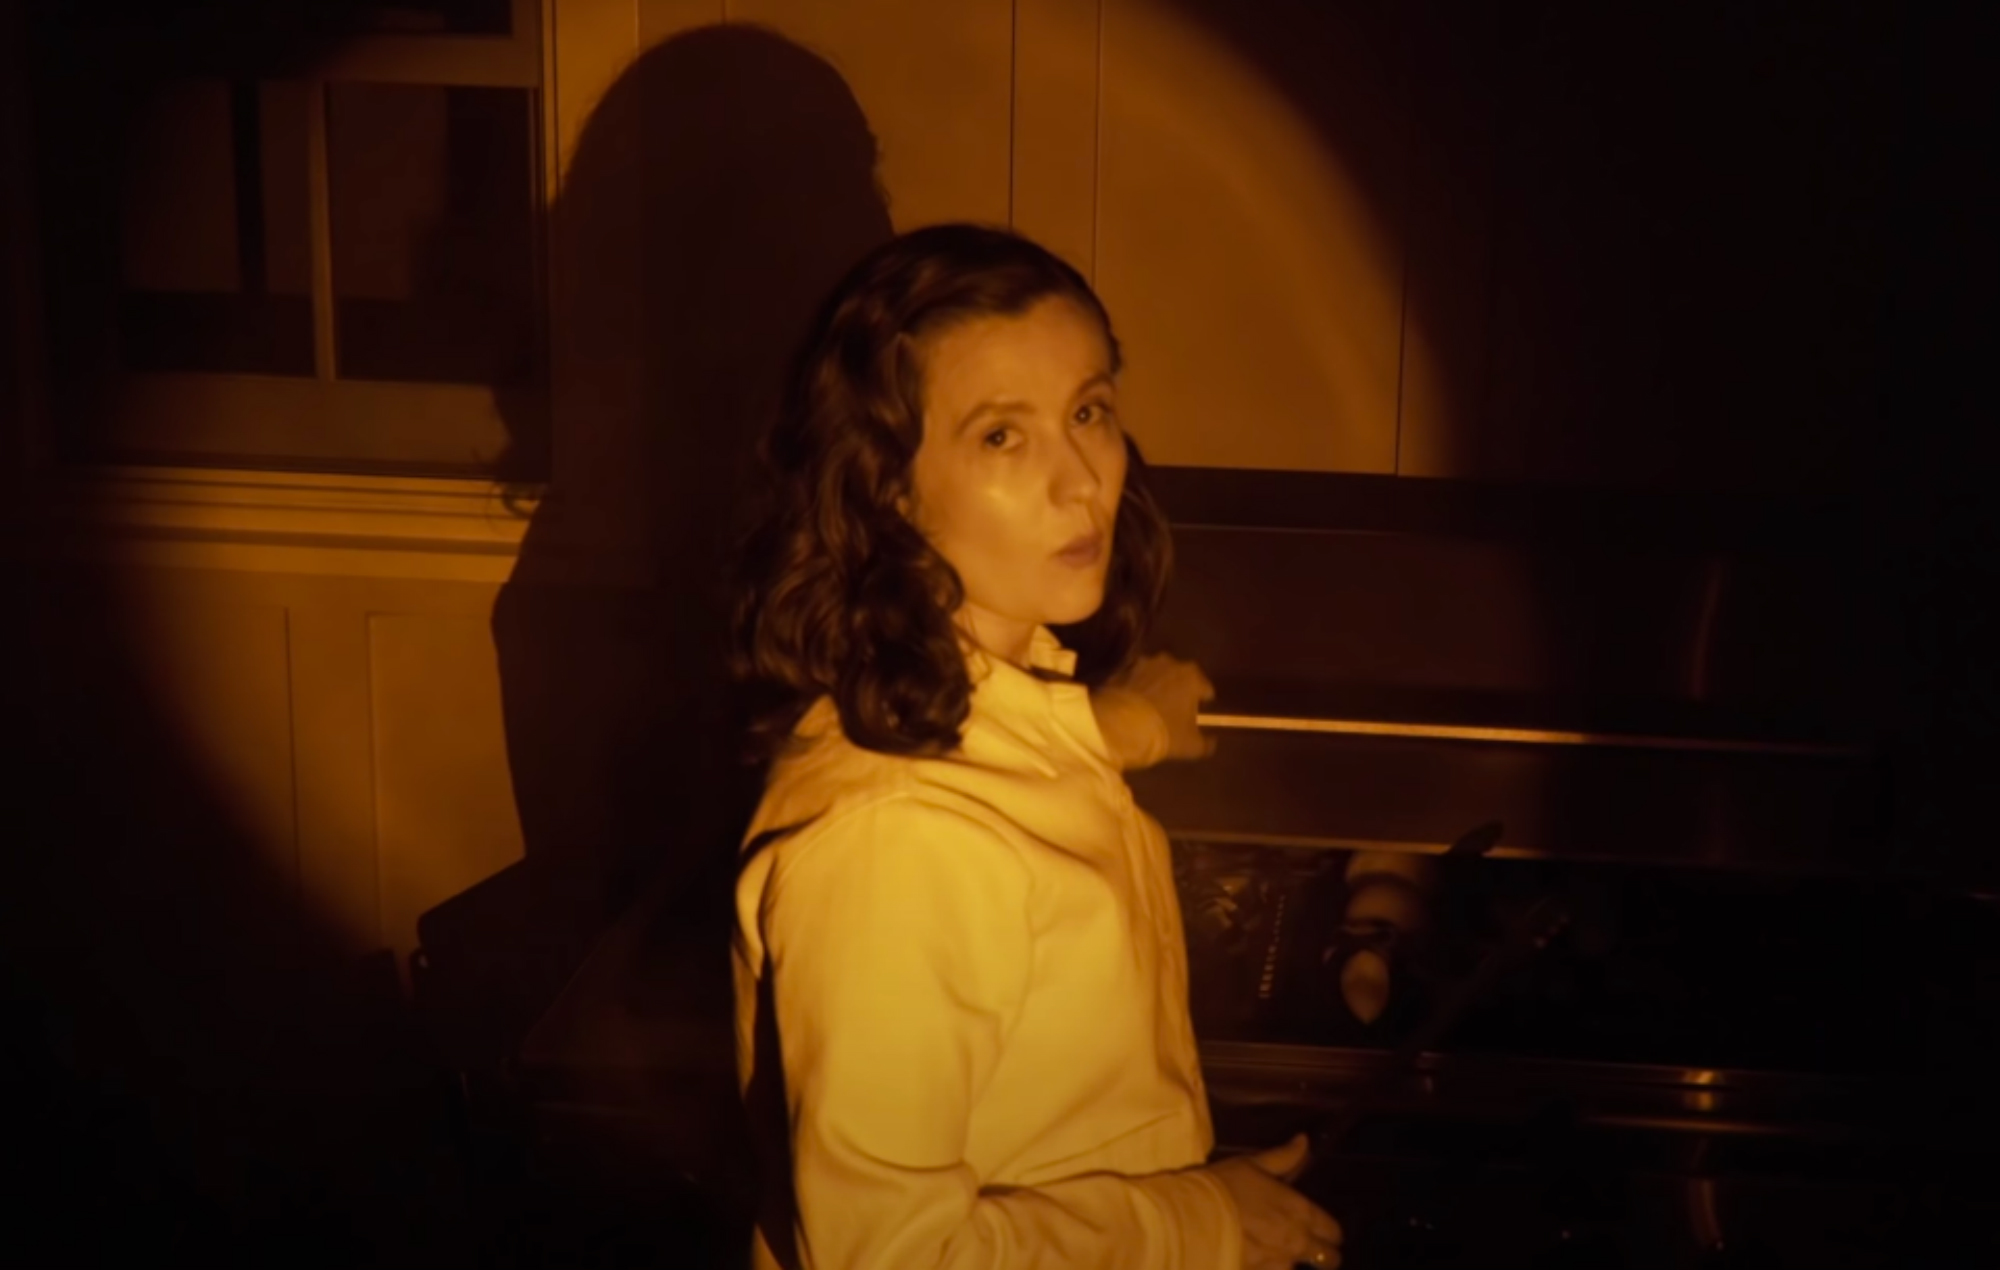 Jessy Lanza confirms details of third album and releases new track 'Face'